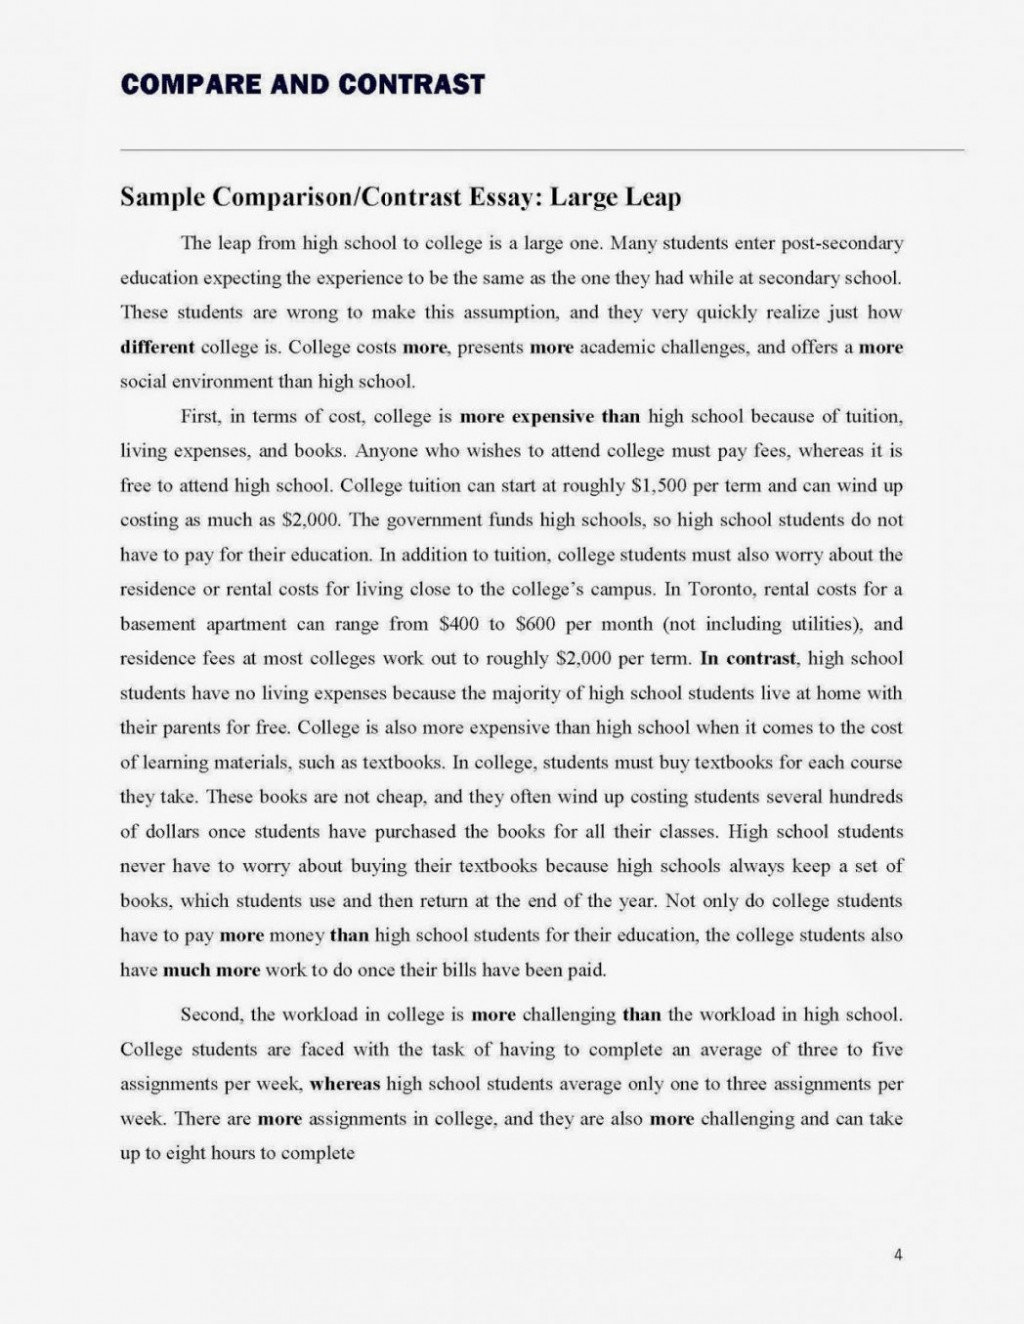 008 Synthesis Essay Prompt Example Compare Contrast Prompts How To Write Ou Do You Good Thesis Introduction For Ap English I Conclusion Outline Lang Fearsome 2017 Locavore Examples Large